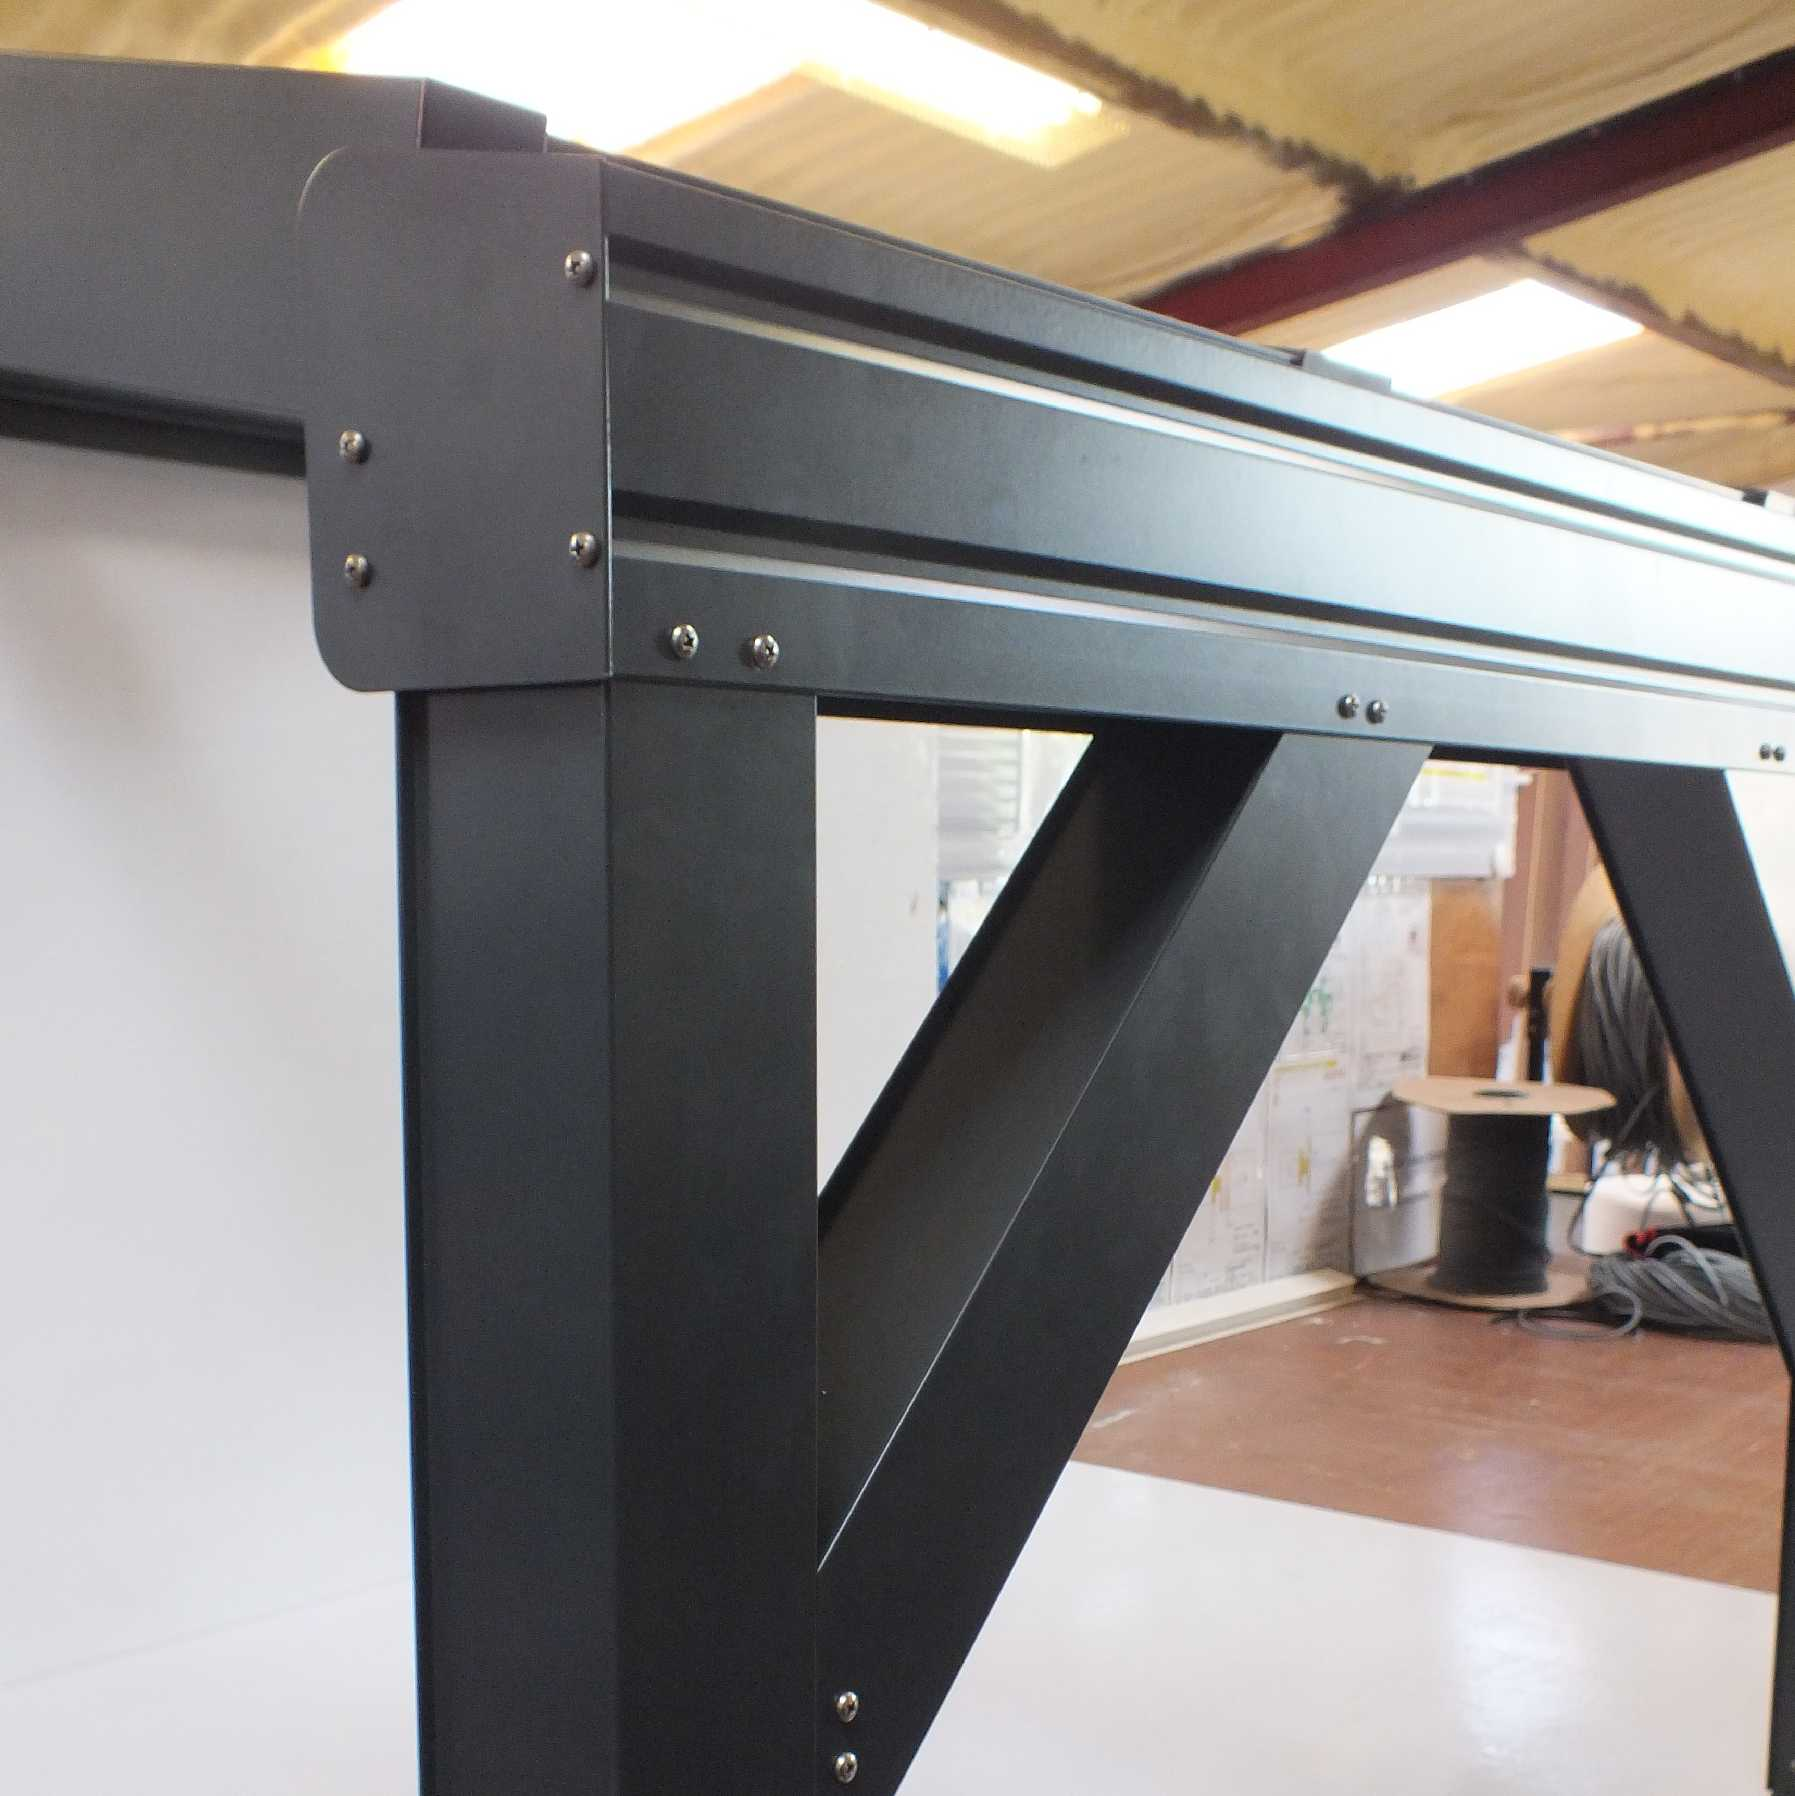 Omega Smart Lean-To Canopy, Anthracite Grey, UNGLAZED for 6mm Glazing - 7.4m (W) x 4.0m (P), (4) Supporting Posts from Omega Build